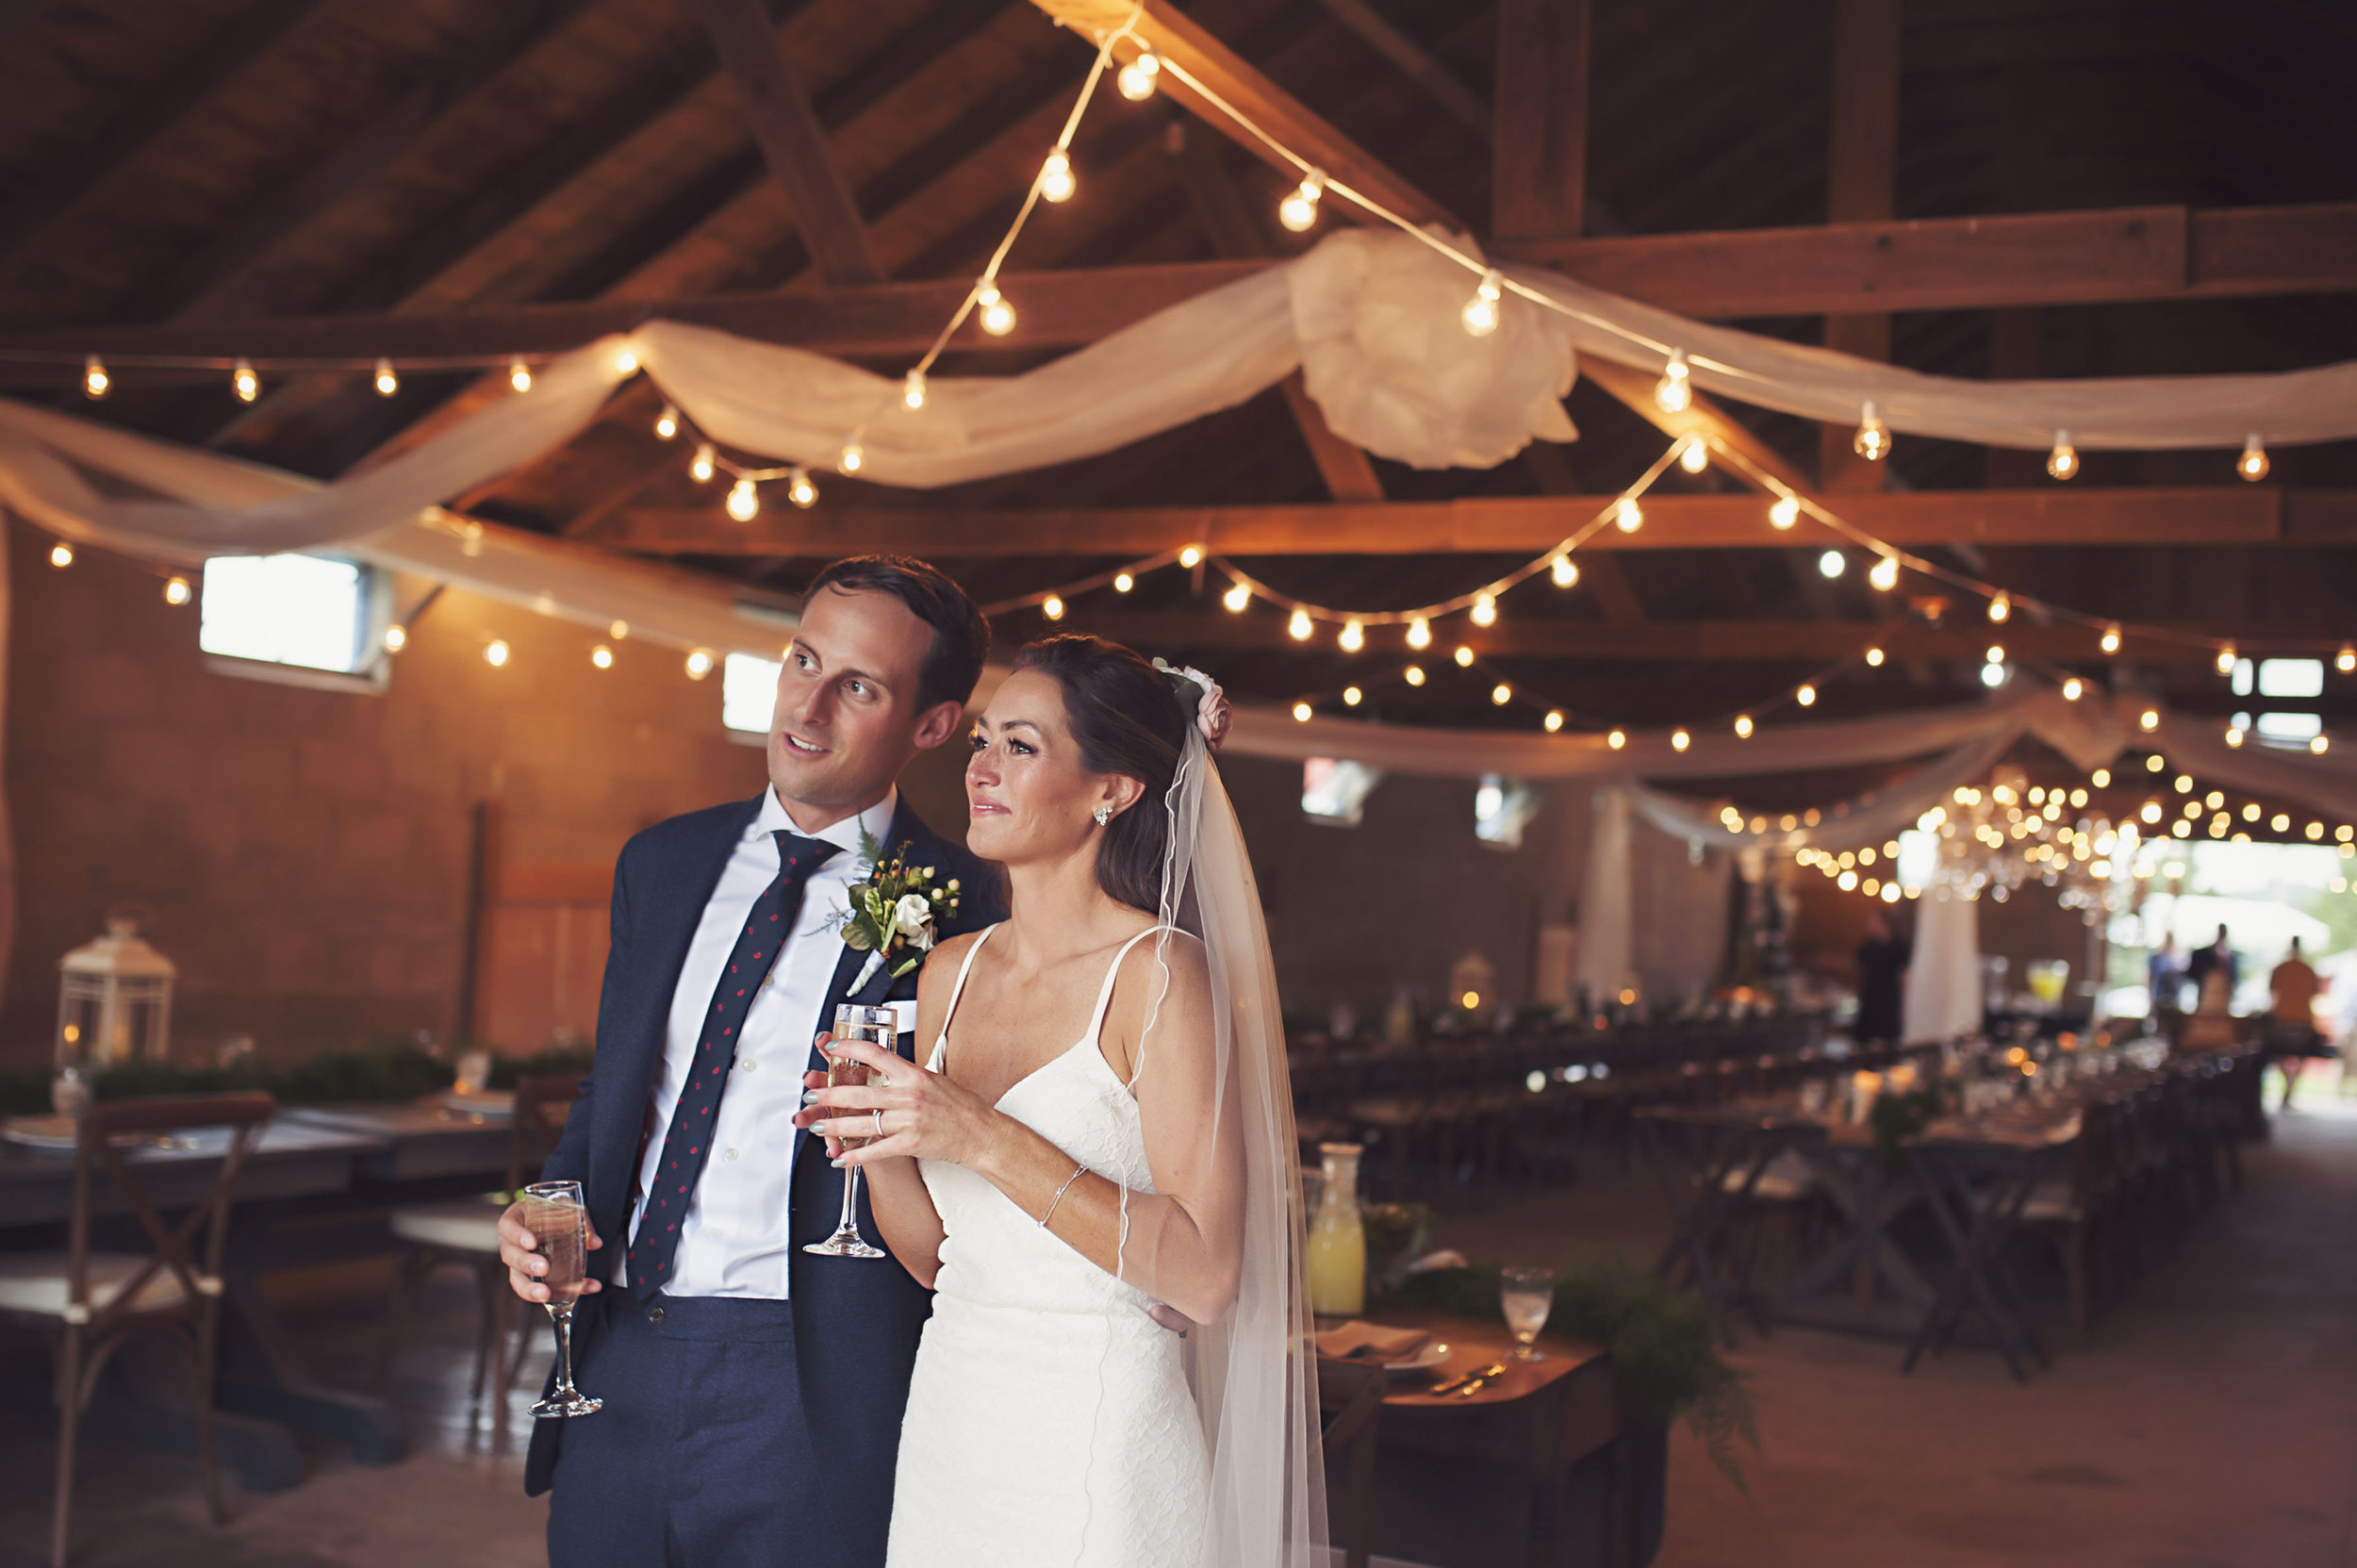 The Reception - Accommodating up to 200 seated guest, the barn provides ample space with rustic details preserved.